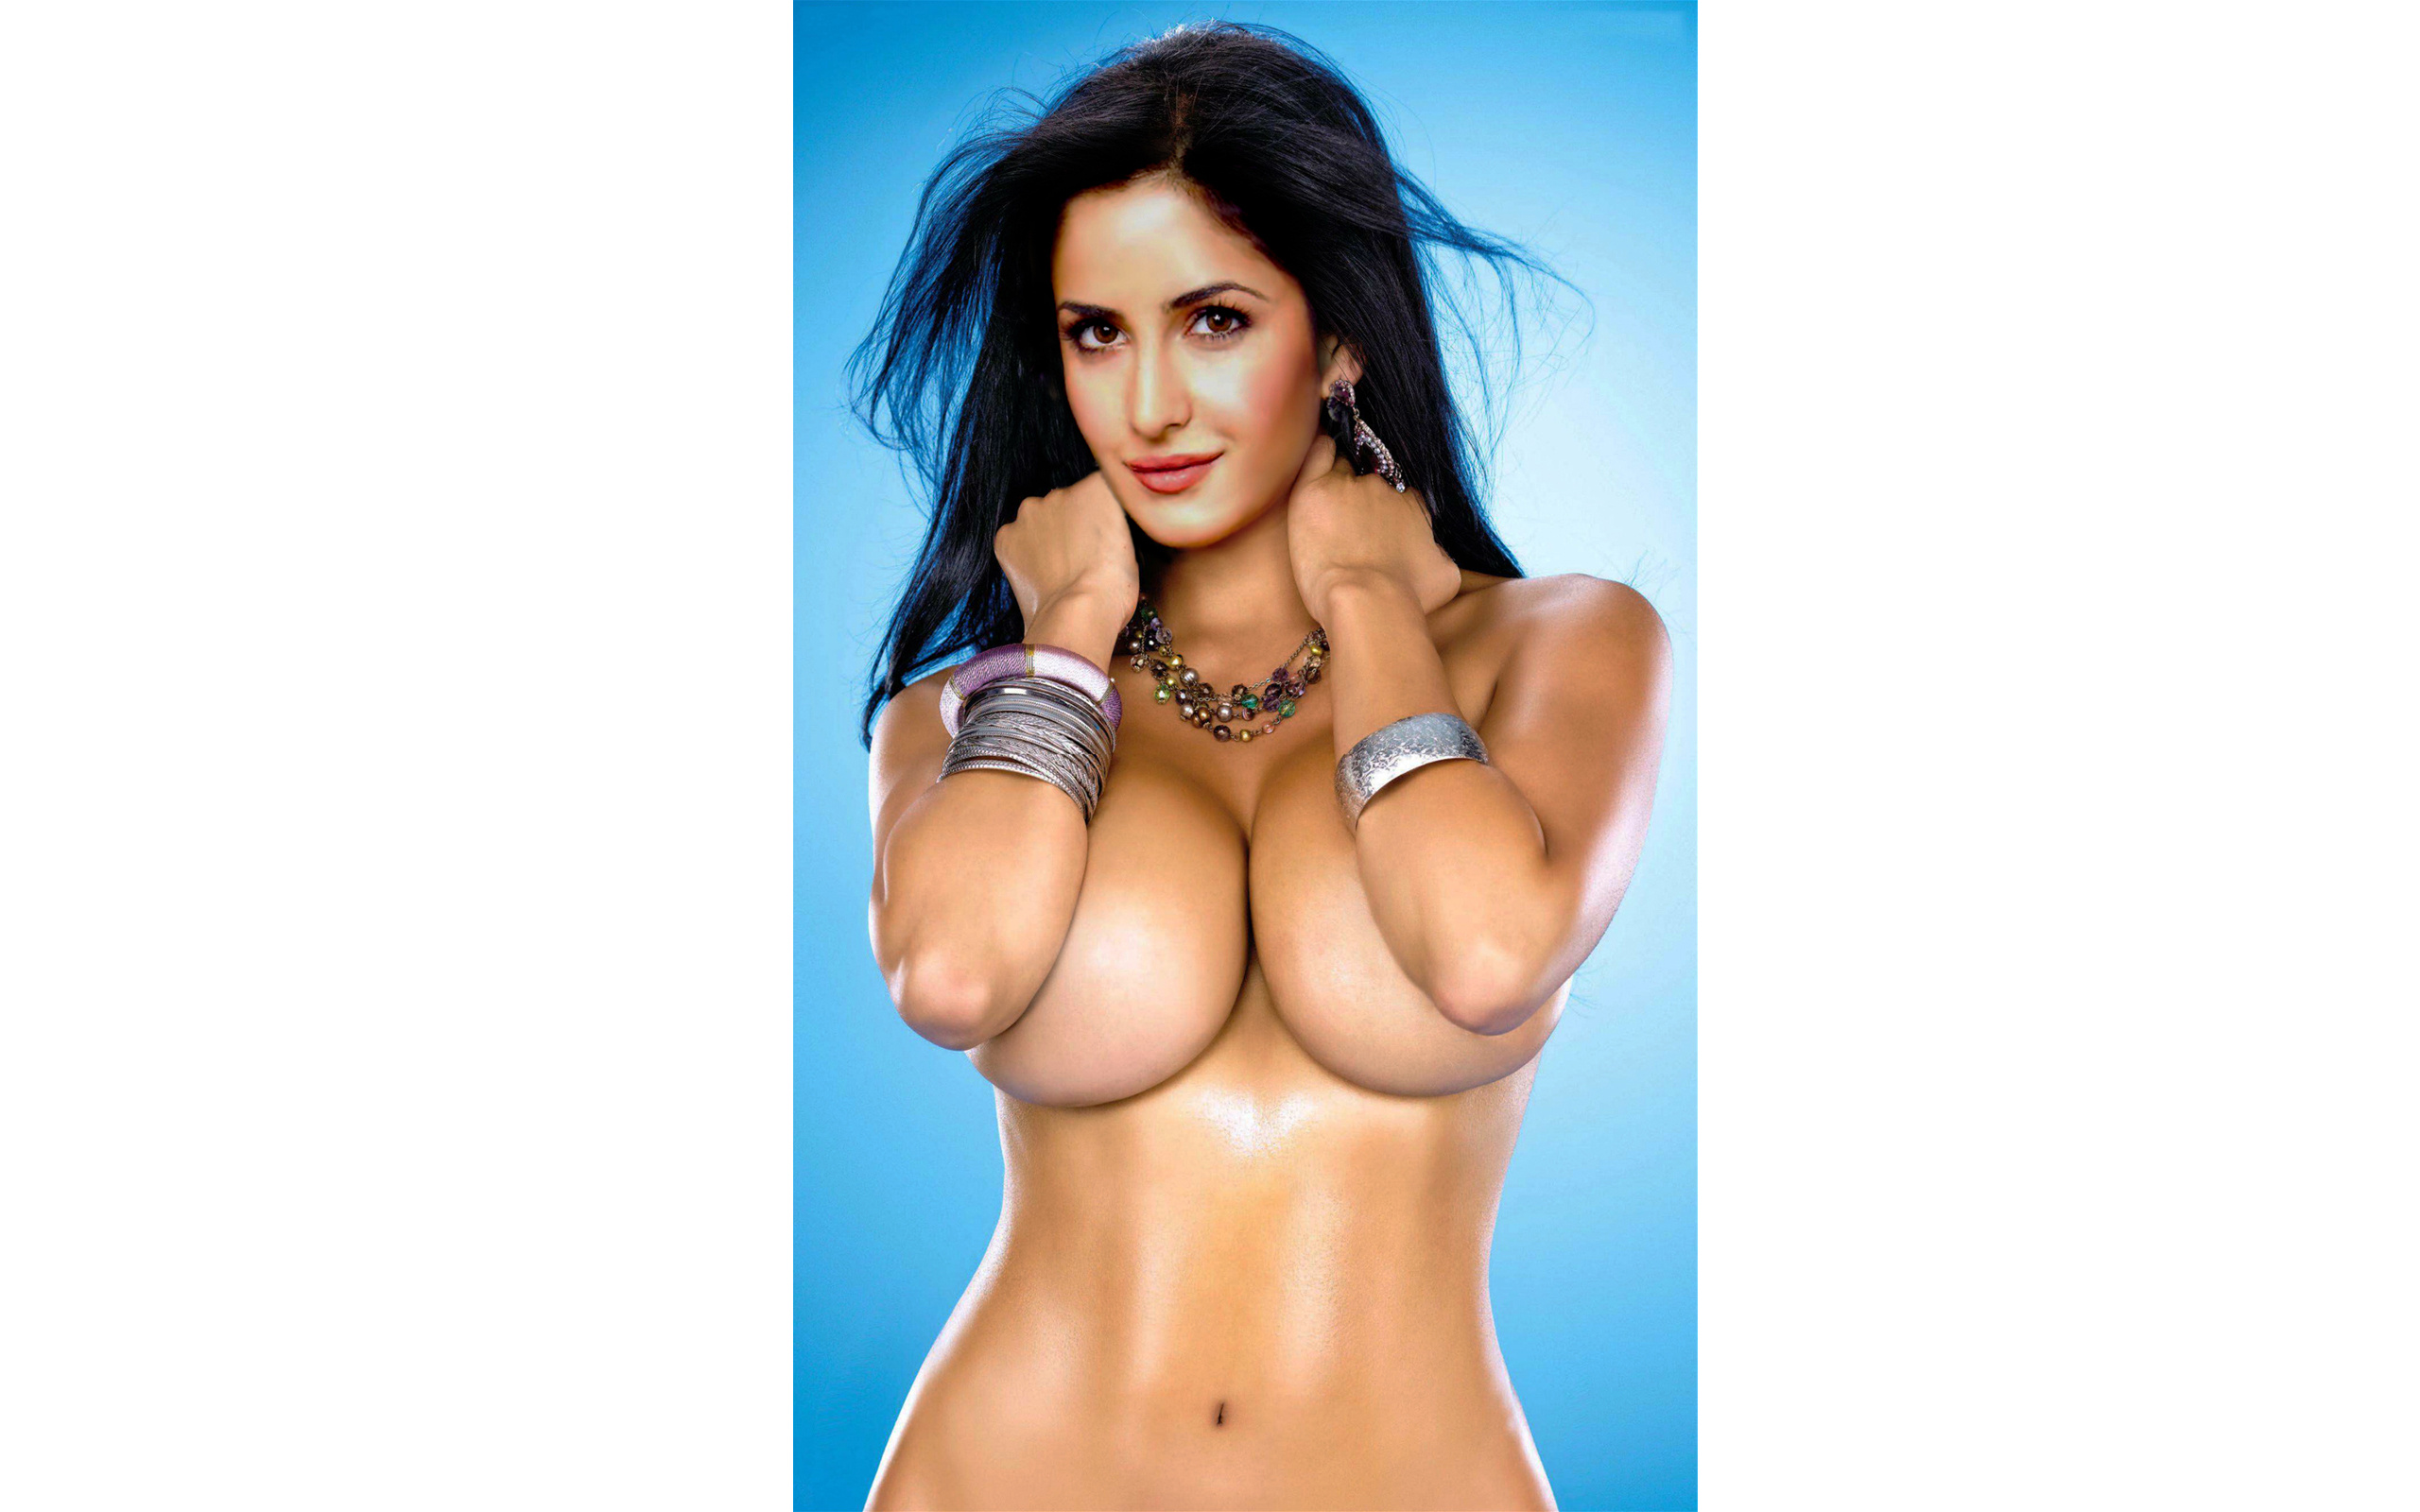 Wallpaper Katrina Kaif, Bollywood Actress, Fake, Big Boobs -7557